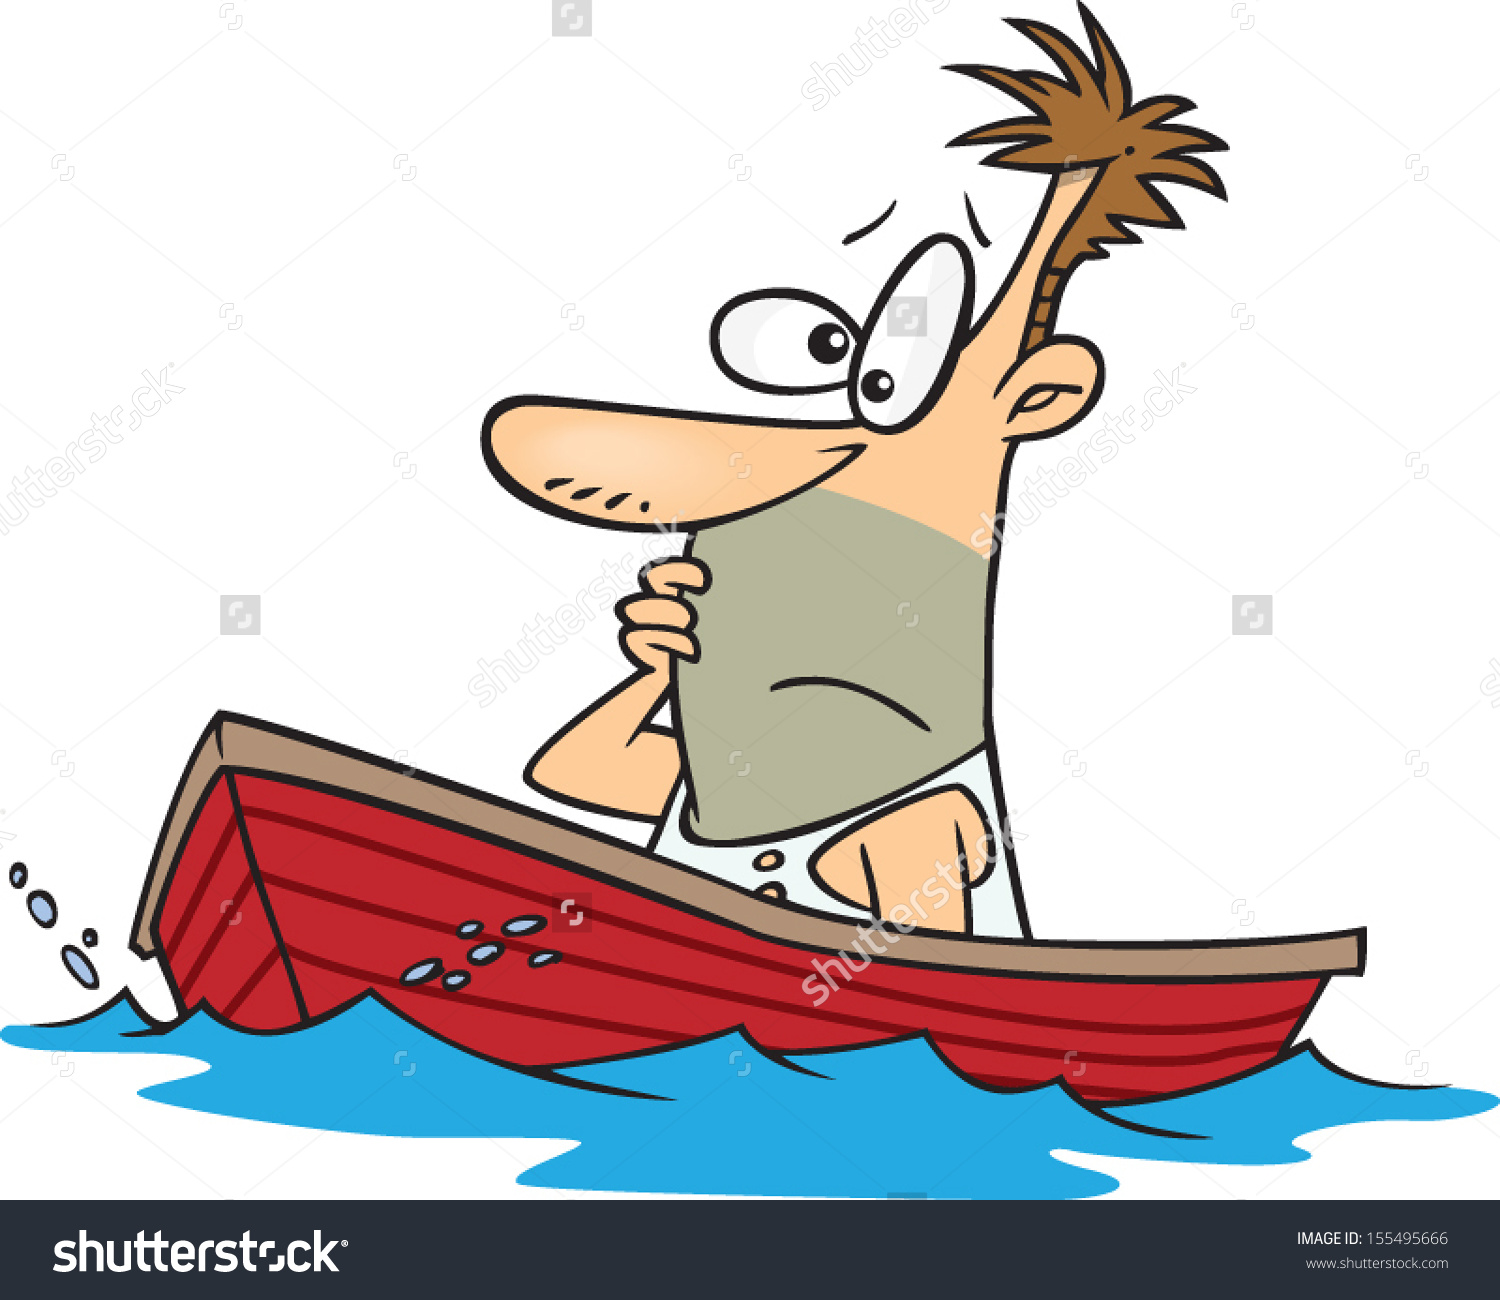 Stranded Cartoon Man Sitting Dingy Boat Stock Vector 155495666.